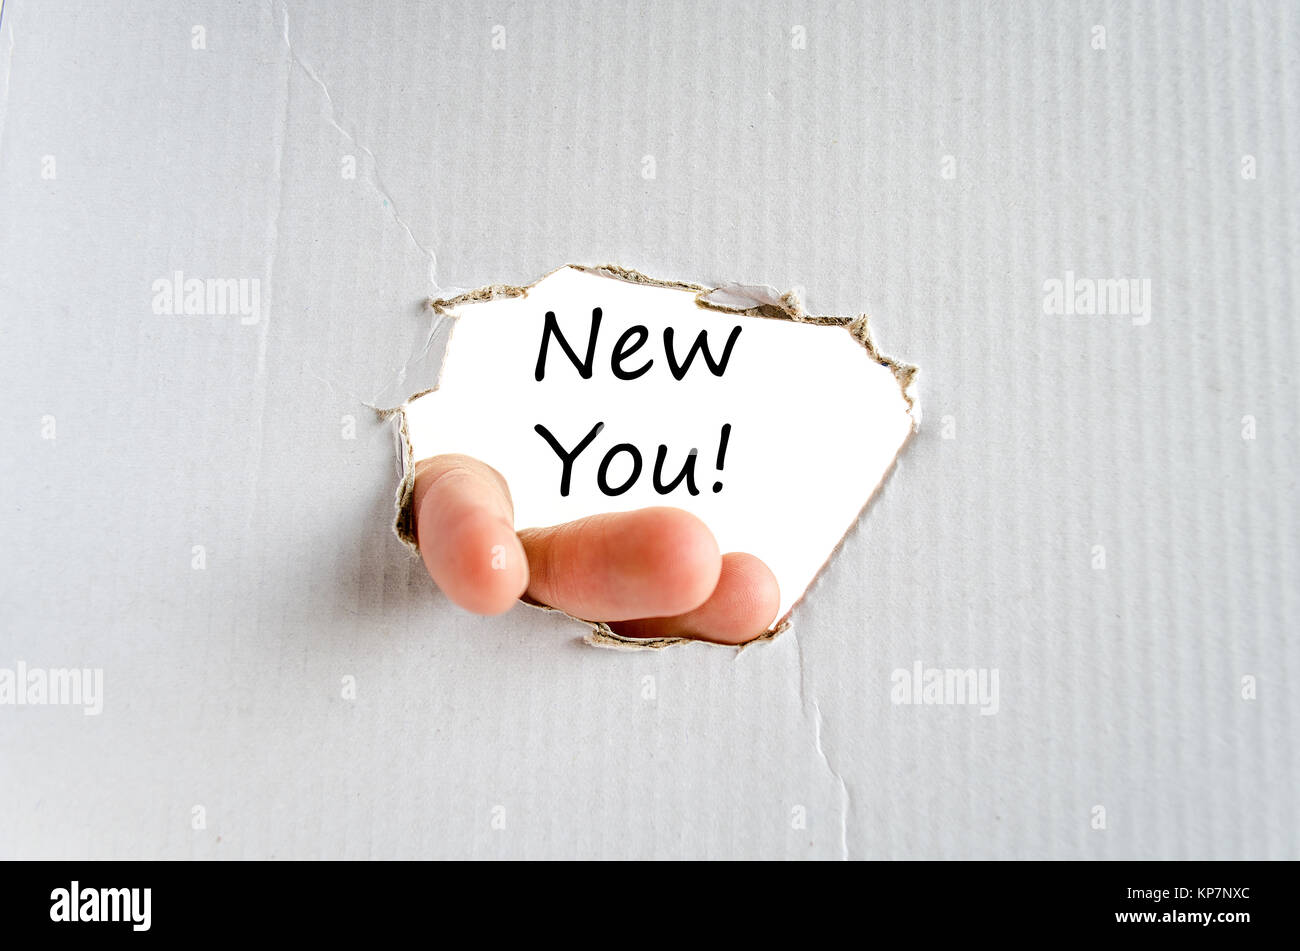 New you text concept - Stock Image